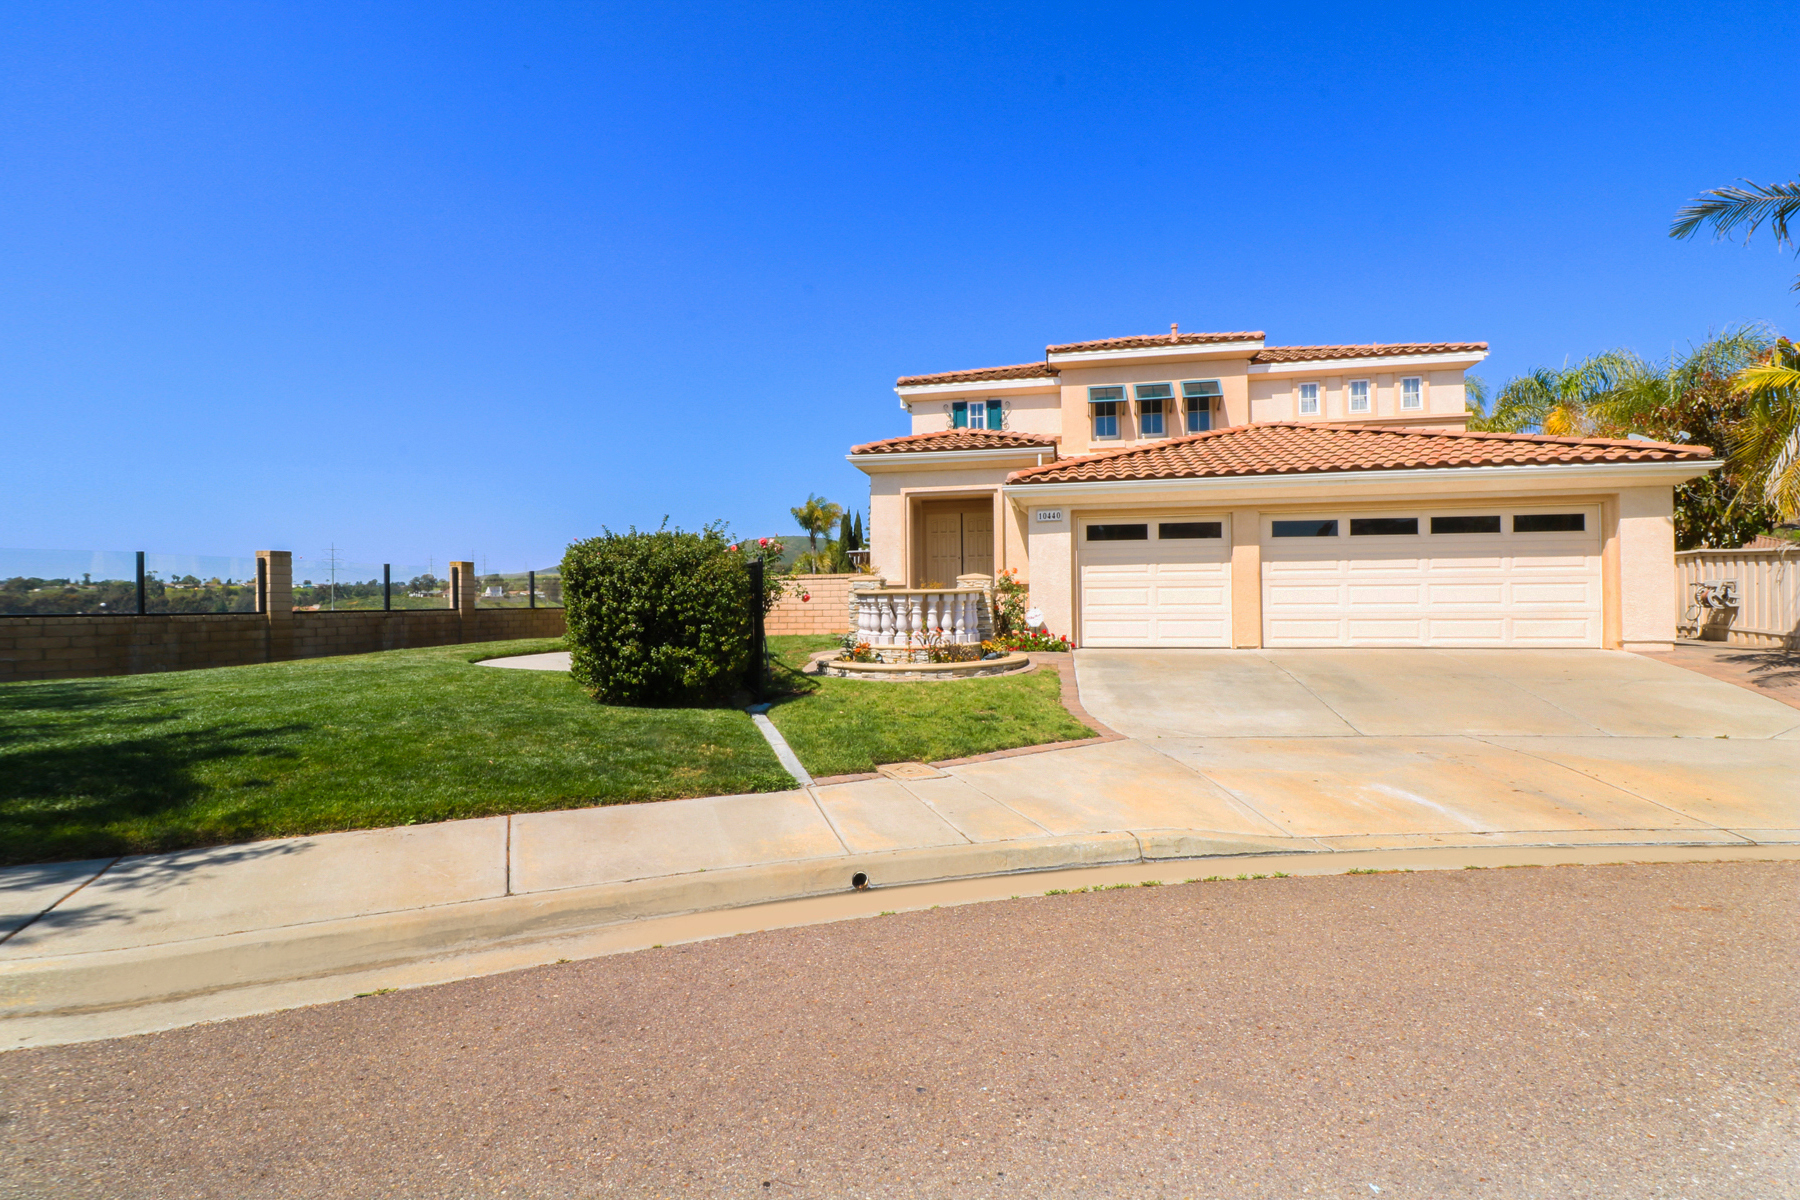 Single Family Home for Sale at 10440 HARVEST VIEW WAY San Diego, California, 92128 United States